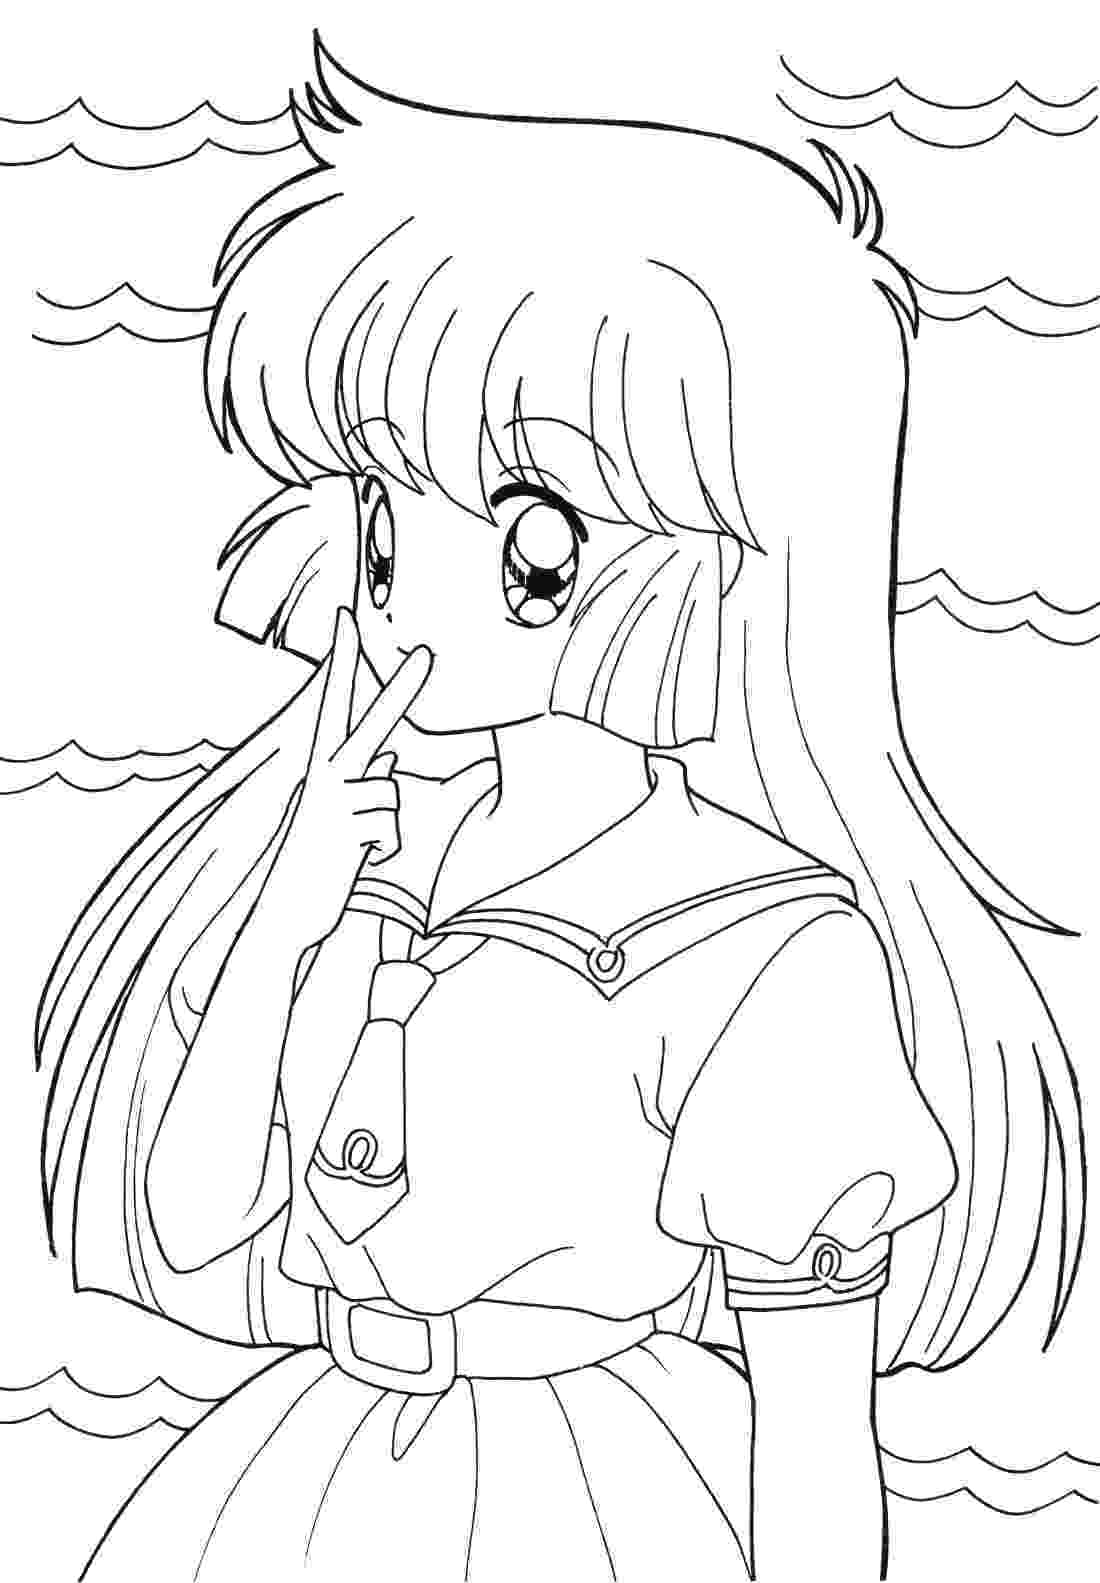 free anime coloring pages to print anime coloring pages best coloring pages for kids anime pages to free print coloring